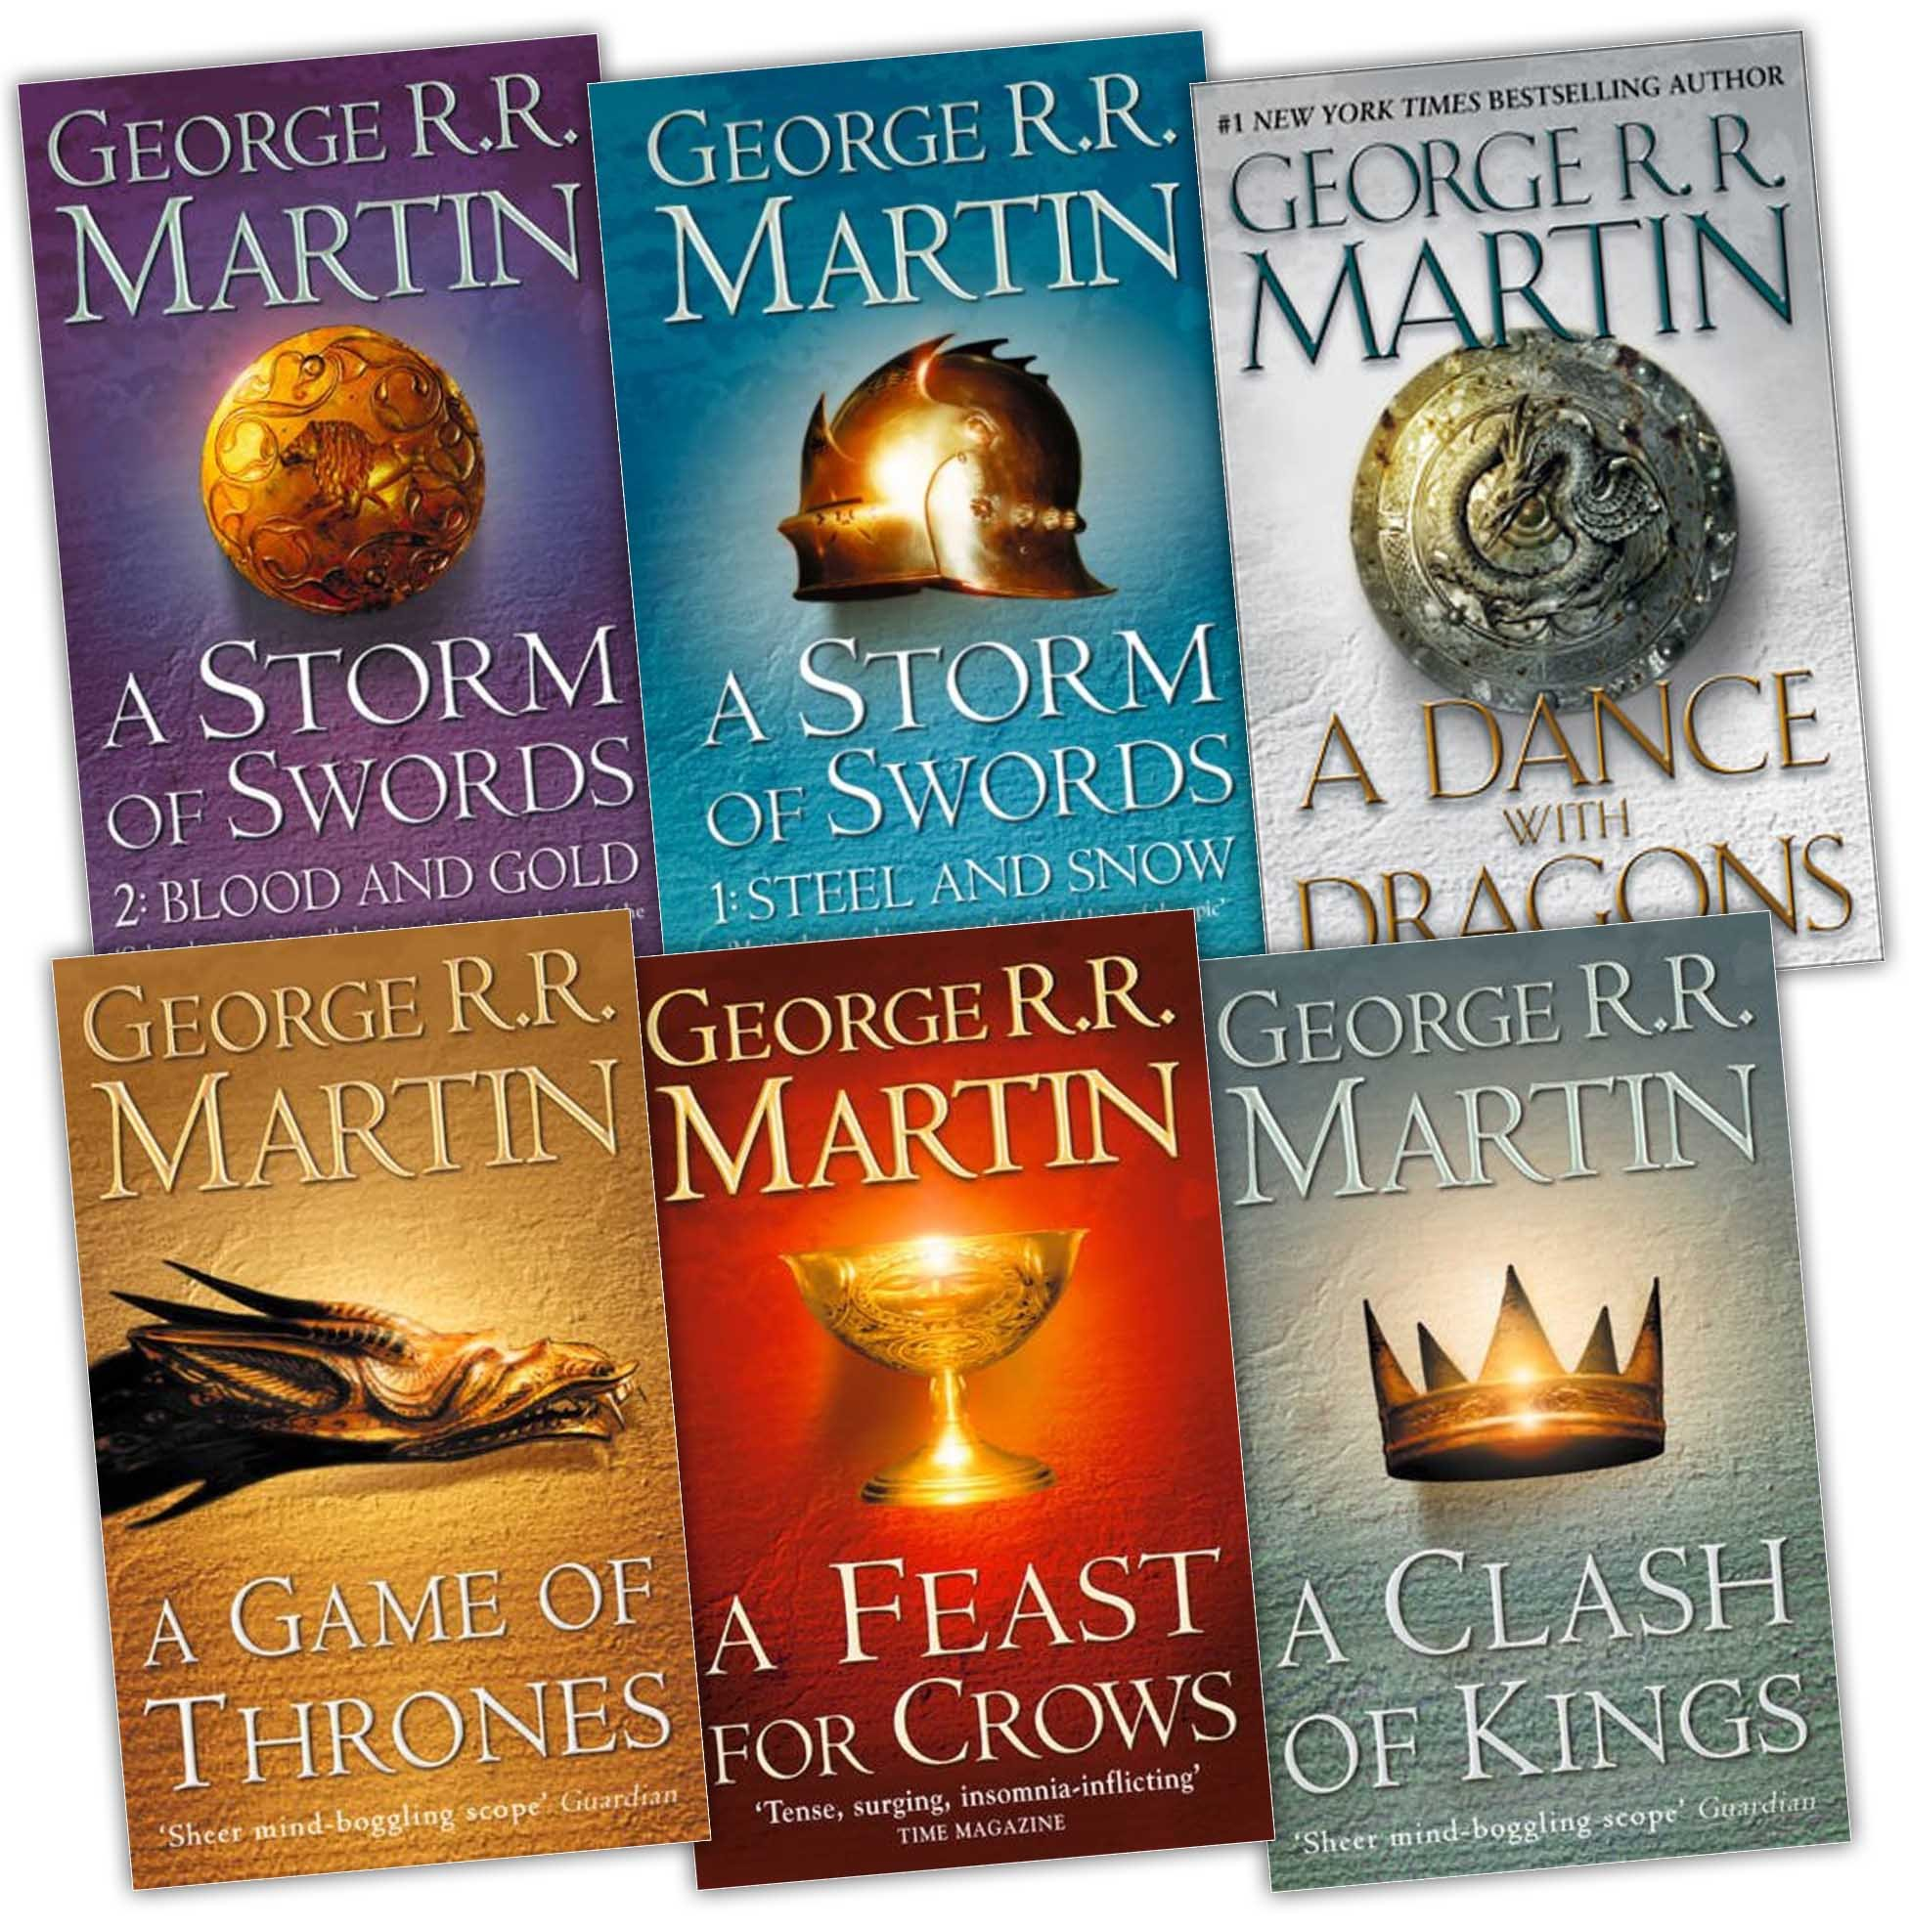 George R. R. Martin A Song of Ice and Fire 6 Books Collection Pack Set RRP: £69.95 A Feast for Crows, A Storm of Swords: Blood and Gold: , A Storm of